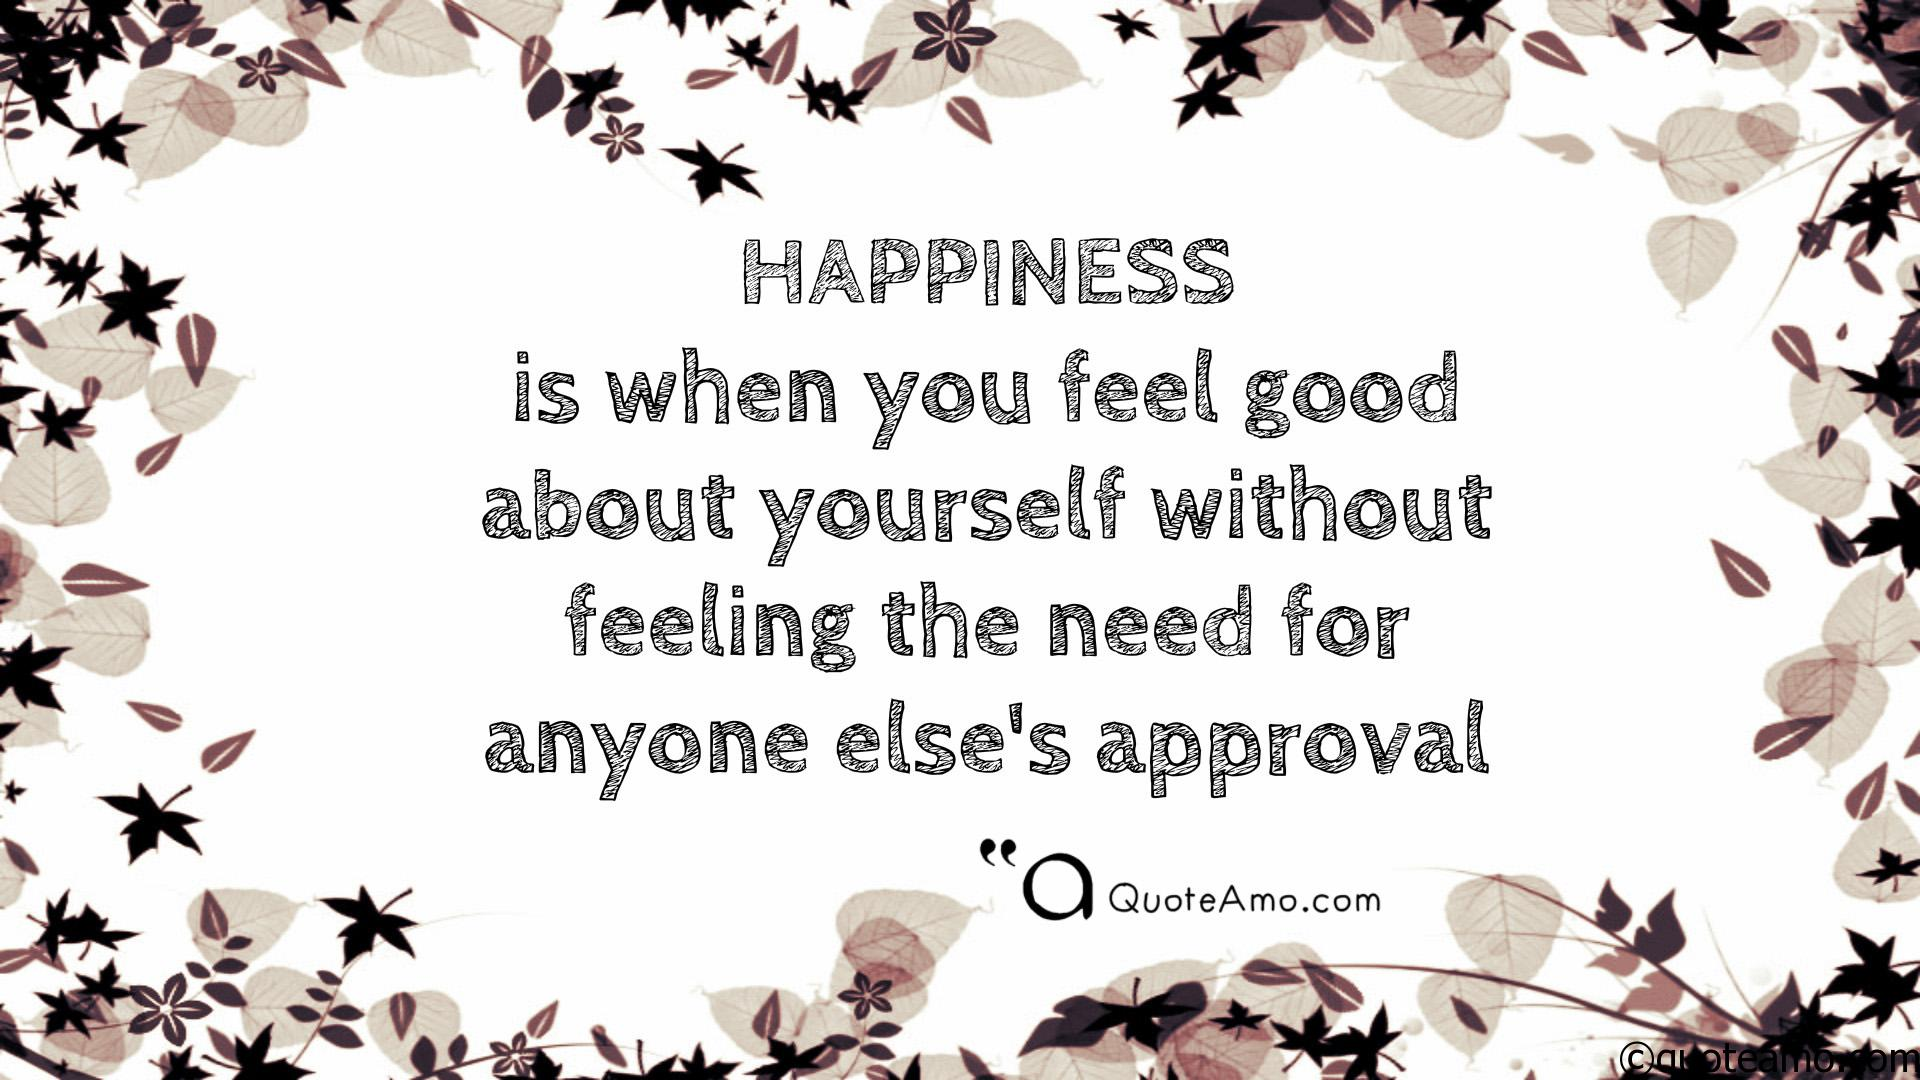 Good Quotes About Happiness Feeling Happiness Wallpaper Quotes And Sayings Hd Screen 1920 X